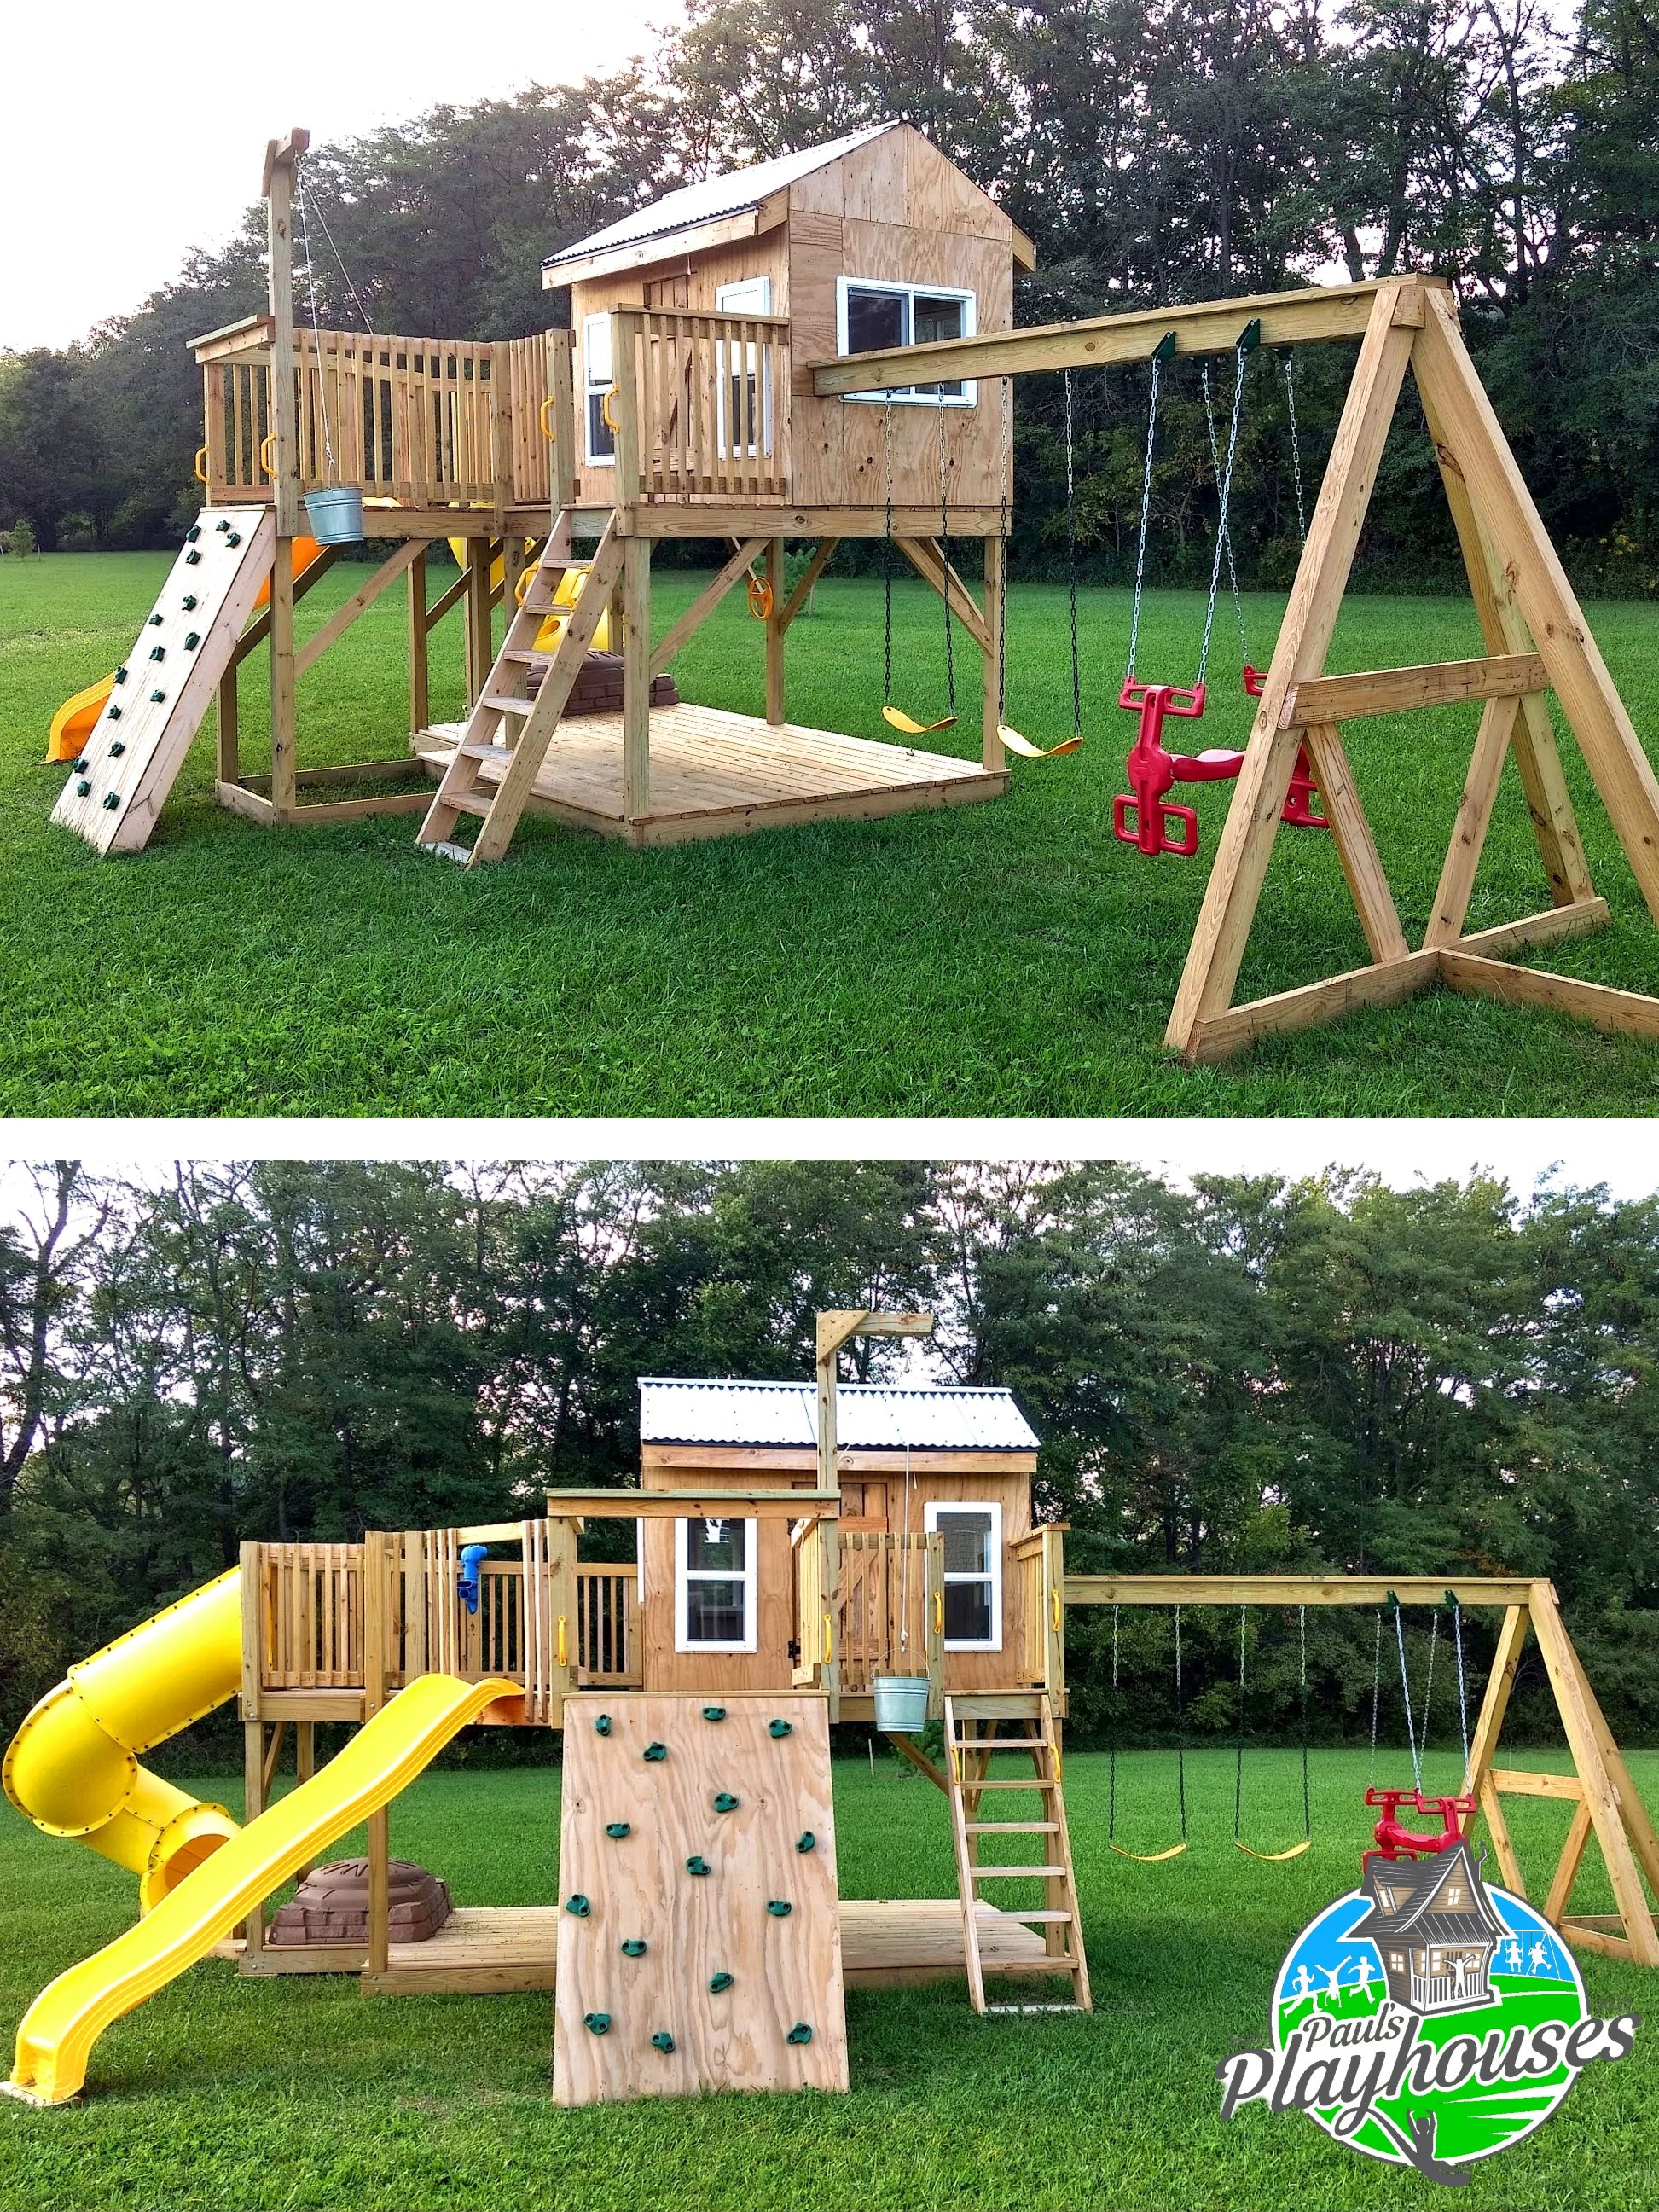 Playground Playhouse Plan (2‑Sizes) in 2020 | Backyard ...